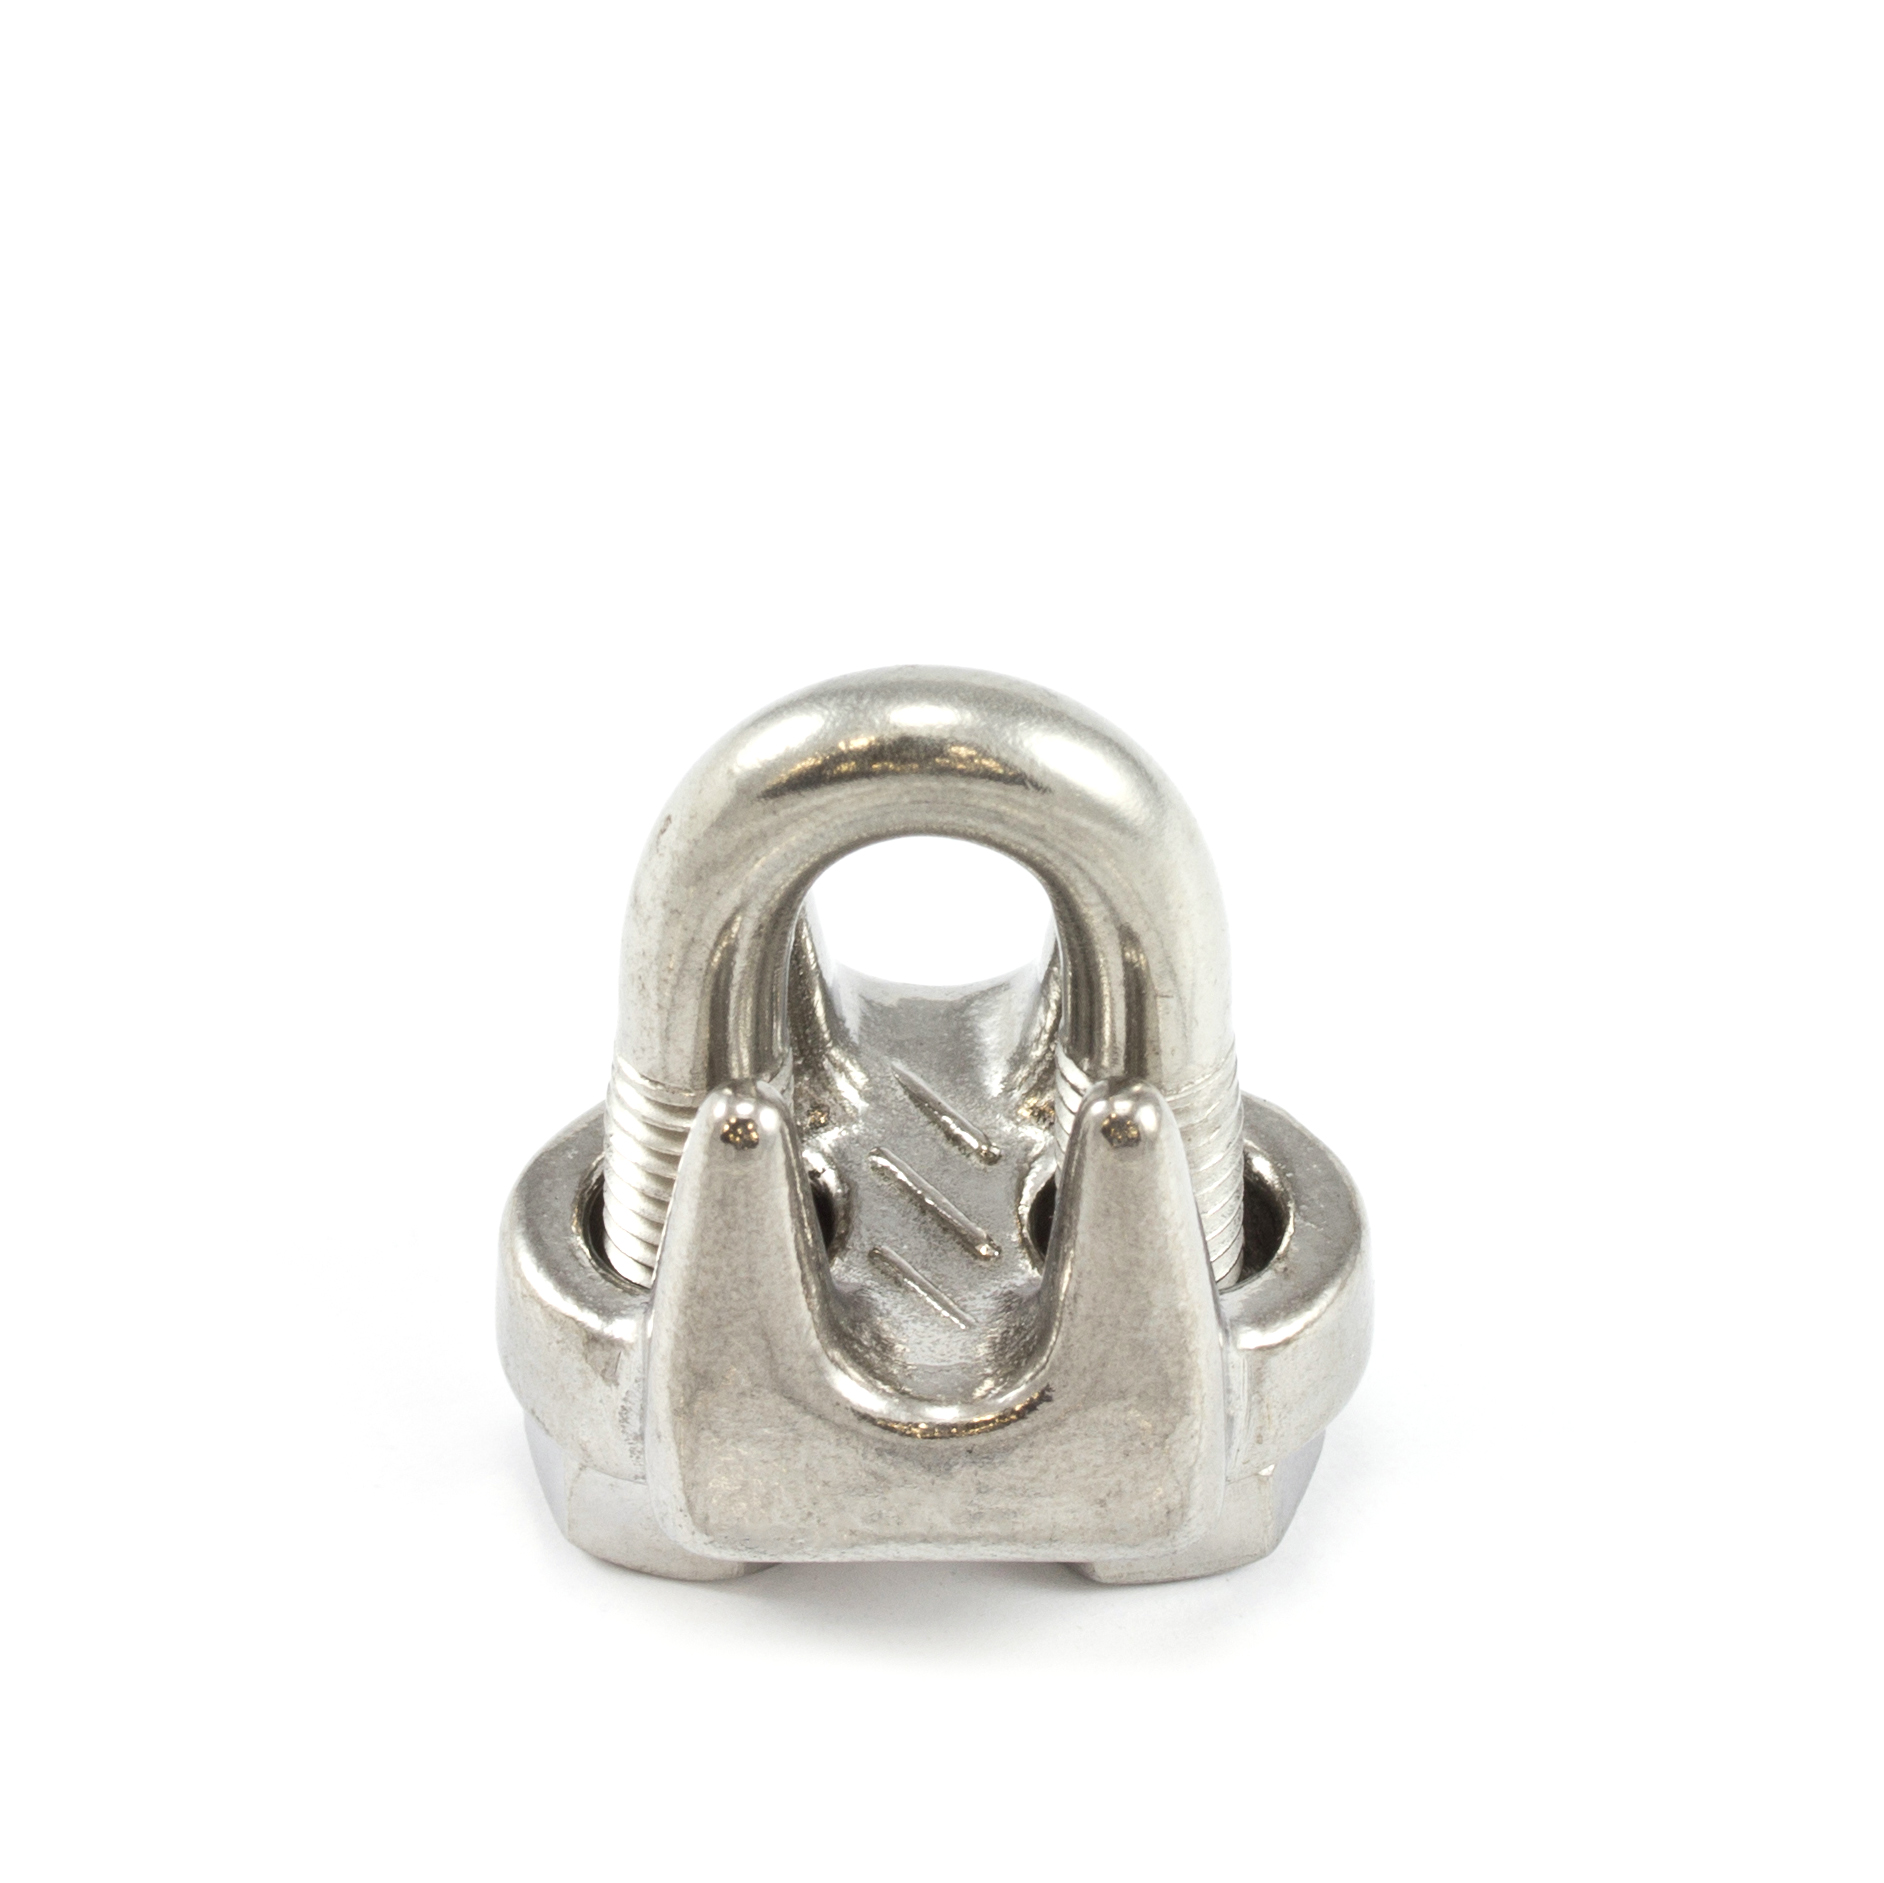 Thumbnail Polyfab Pro Rope Clamp #SS-WRC-06 6mm 2